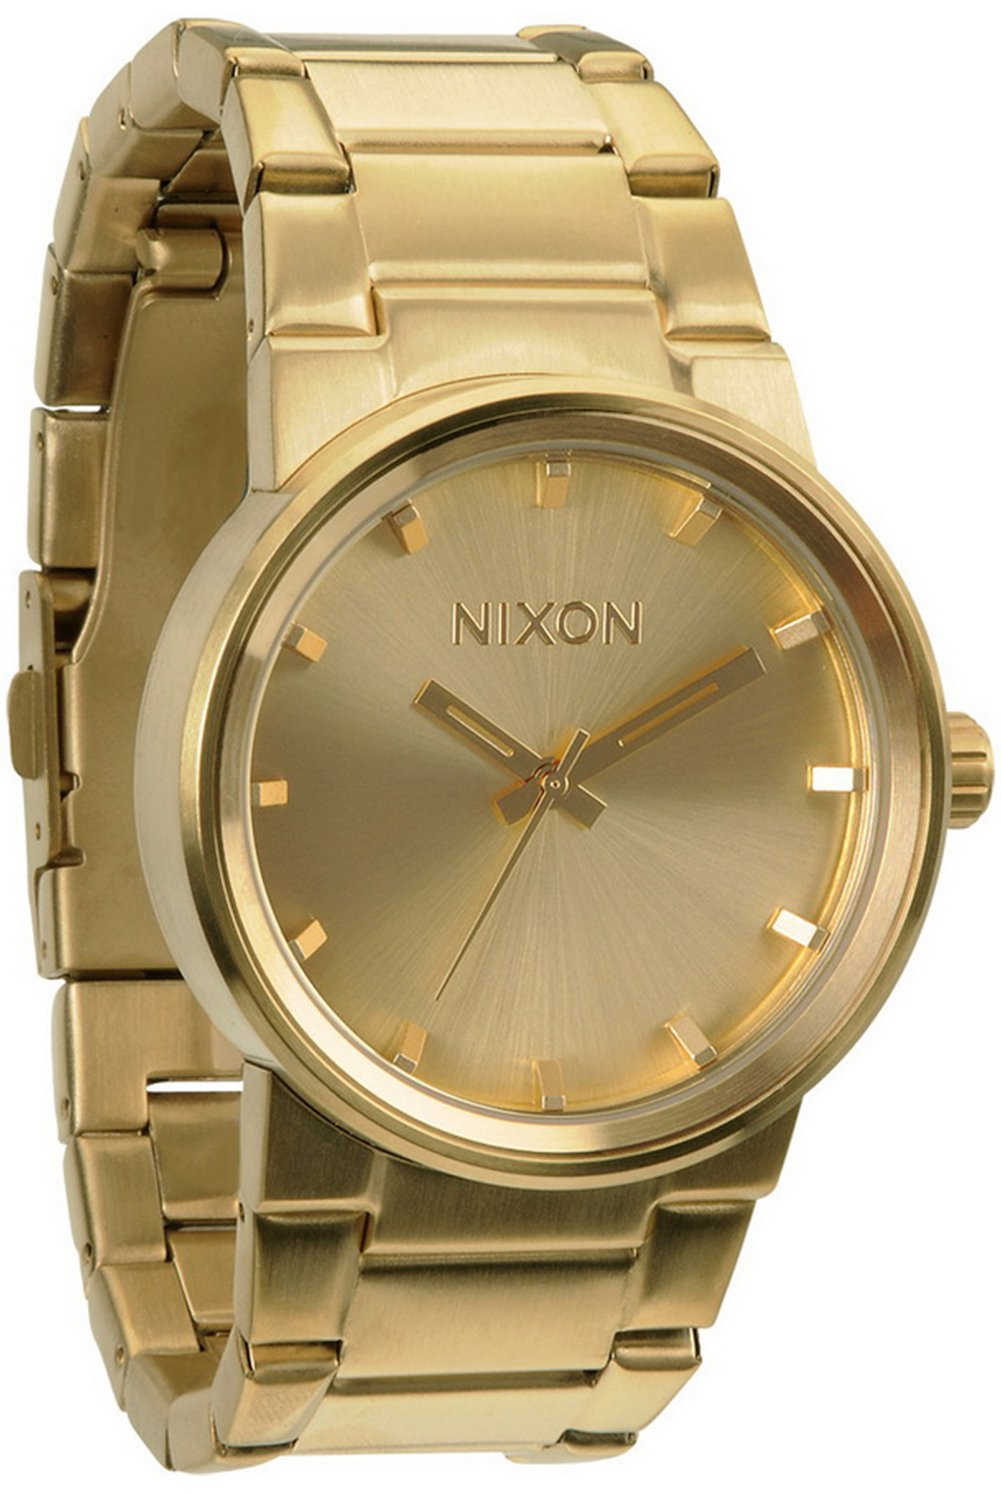 Nixon The Cannon A160502 Unisex Gold Plated Watch by NIXON